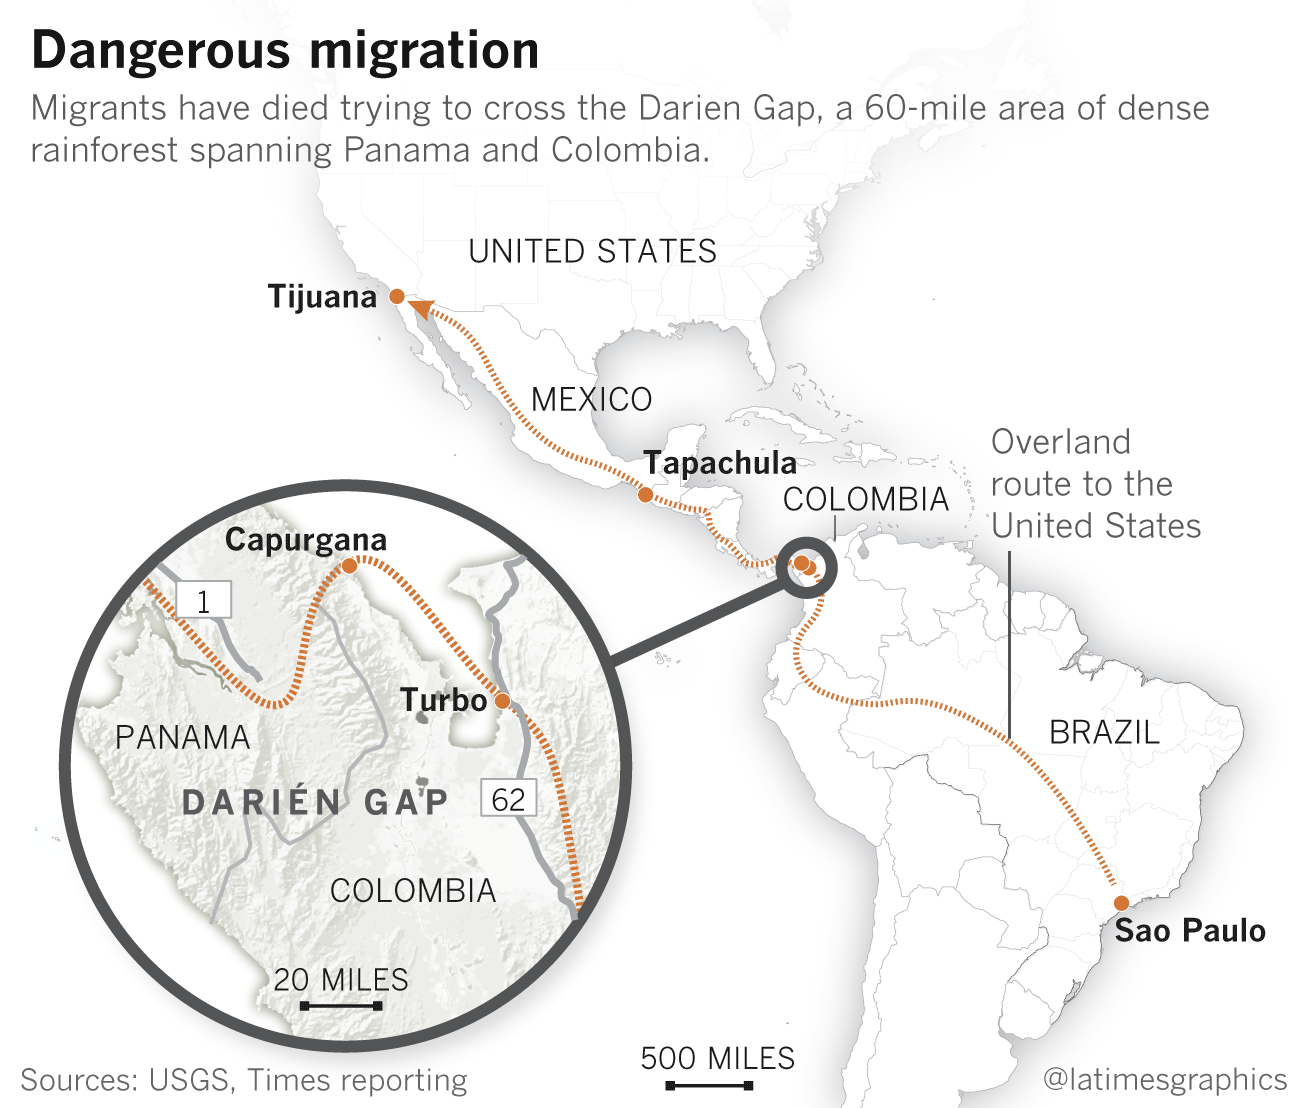 Crossing the Darién Gap: Migrants from around the globe